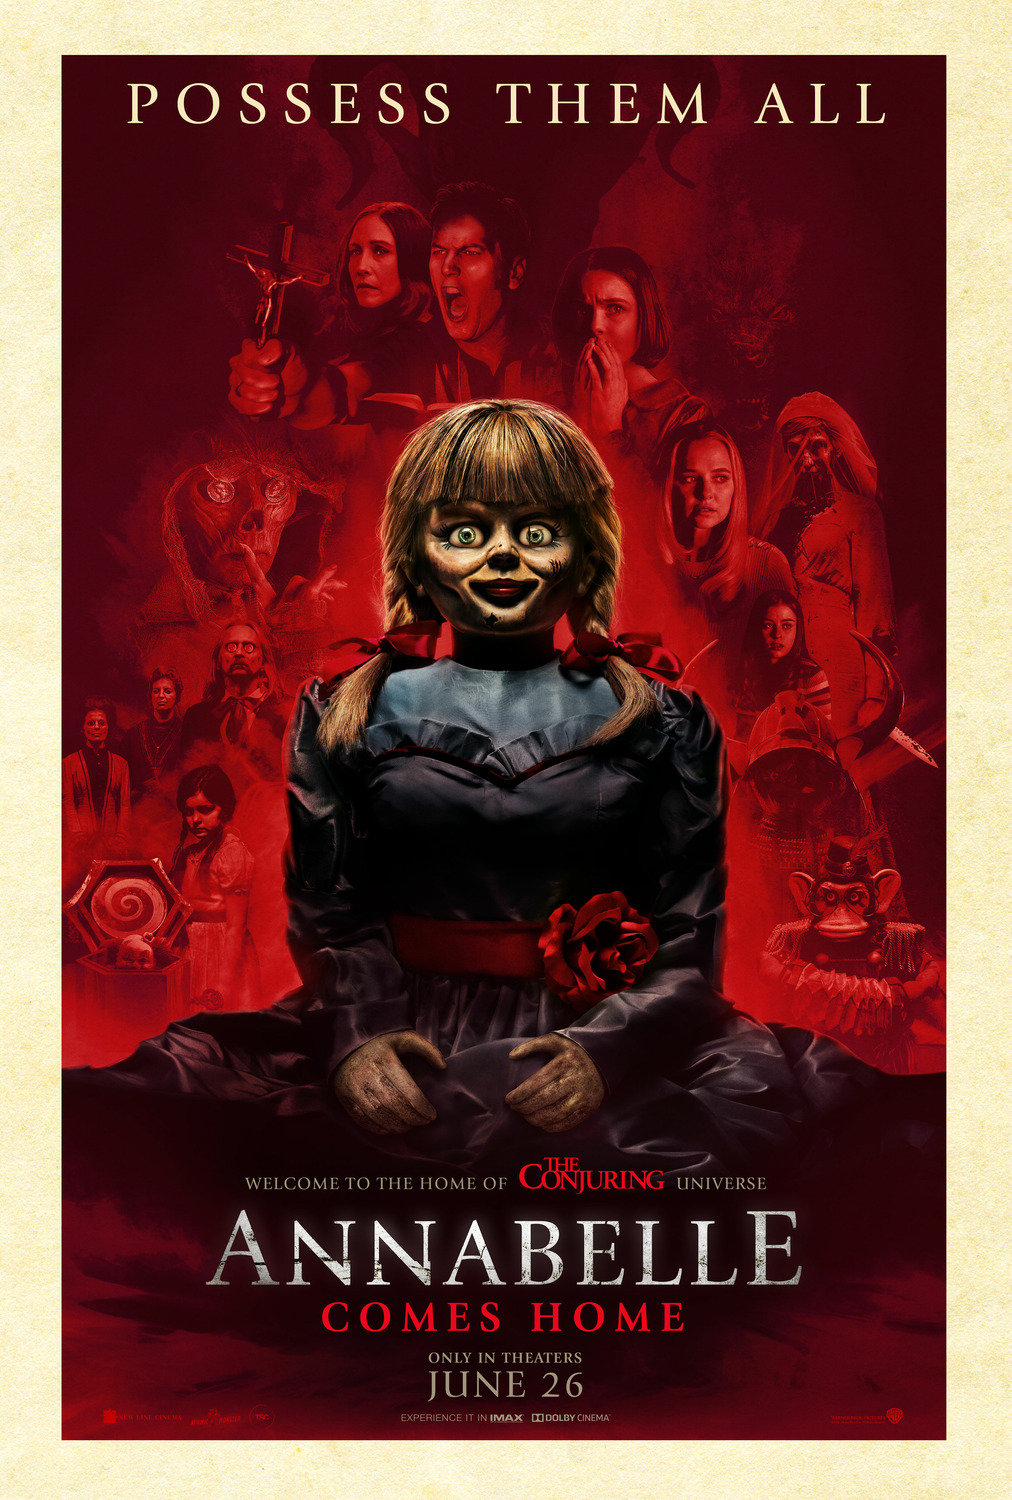 Annabelle Comes Home poster image